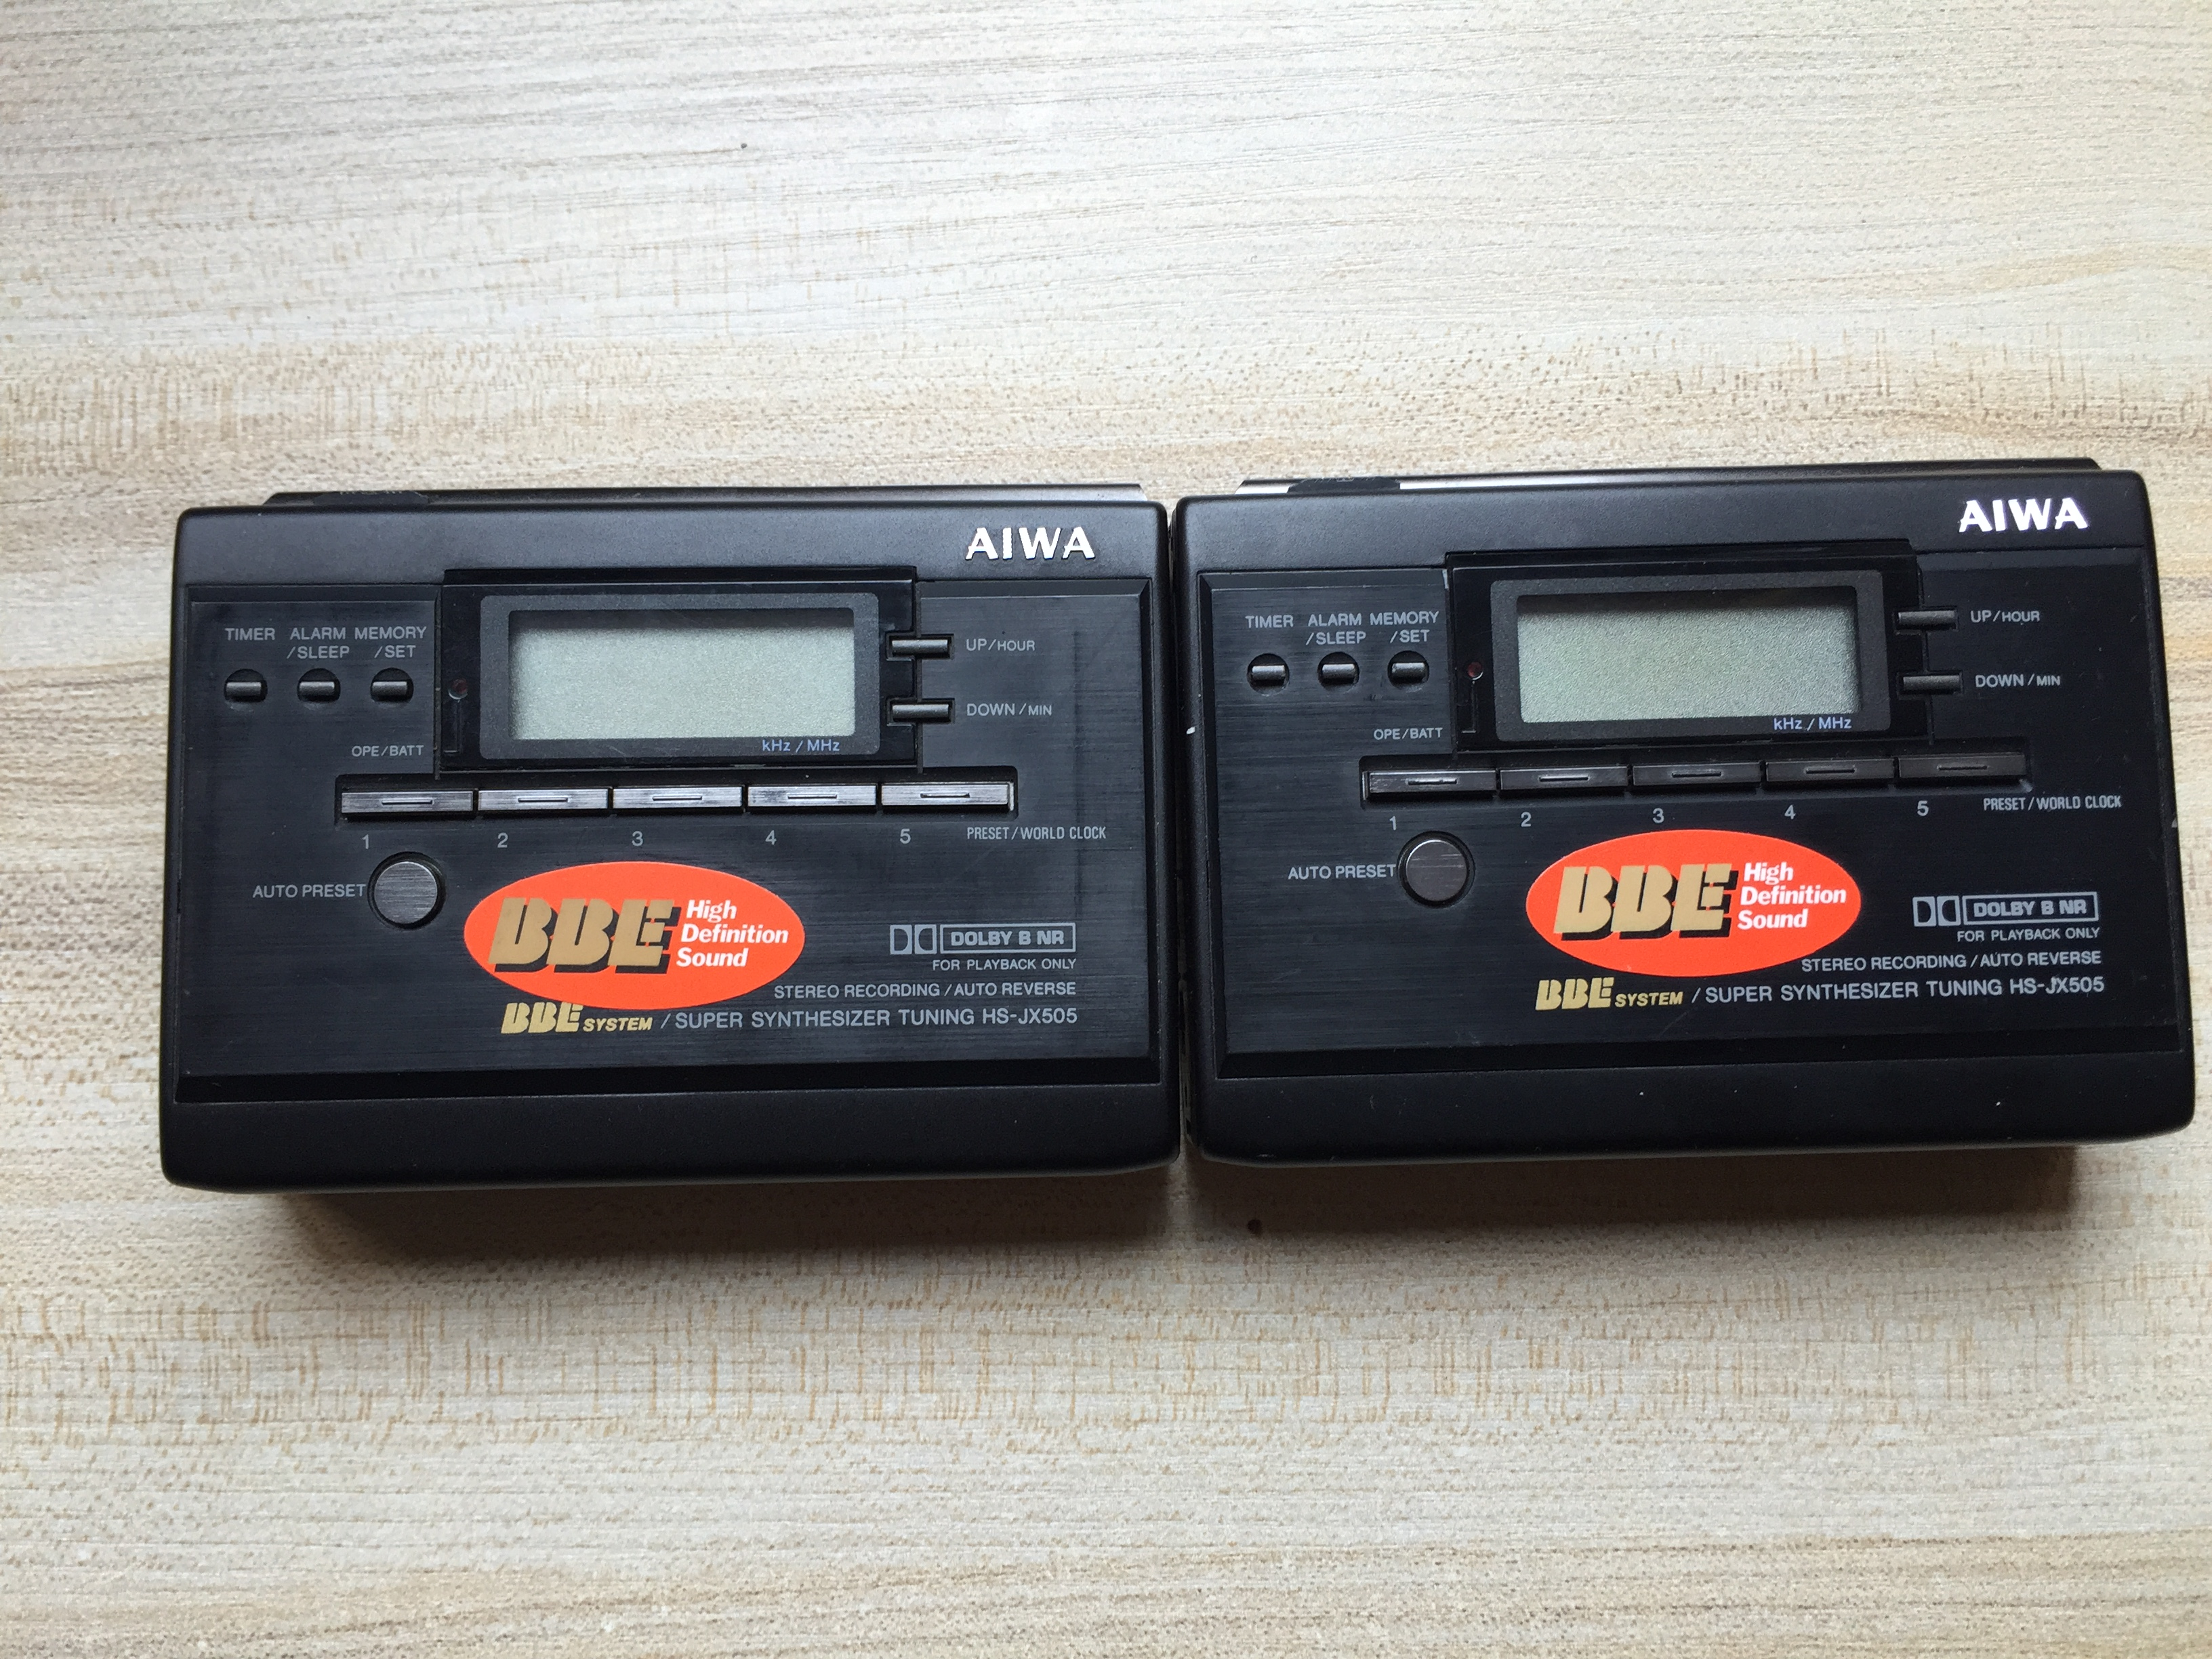 [Secondhand products]Aihua HS-JX505 tape machine problem machine!